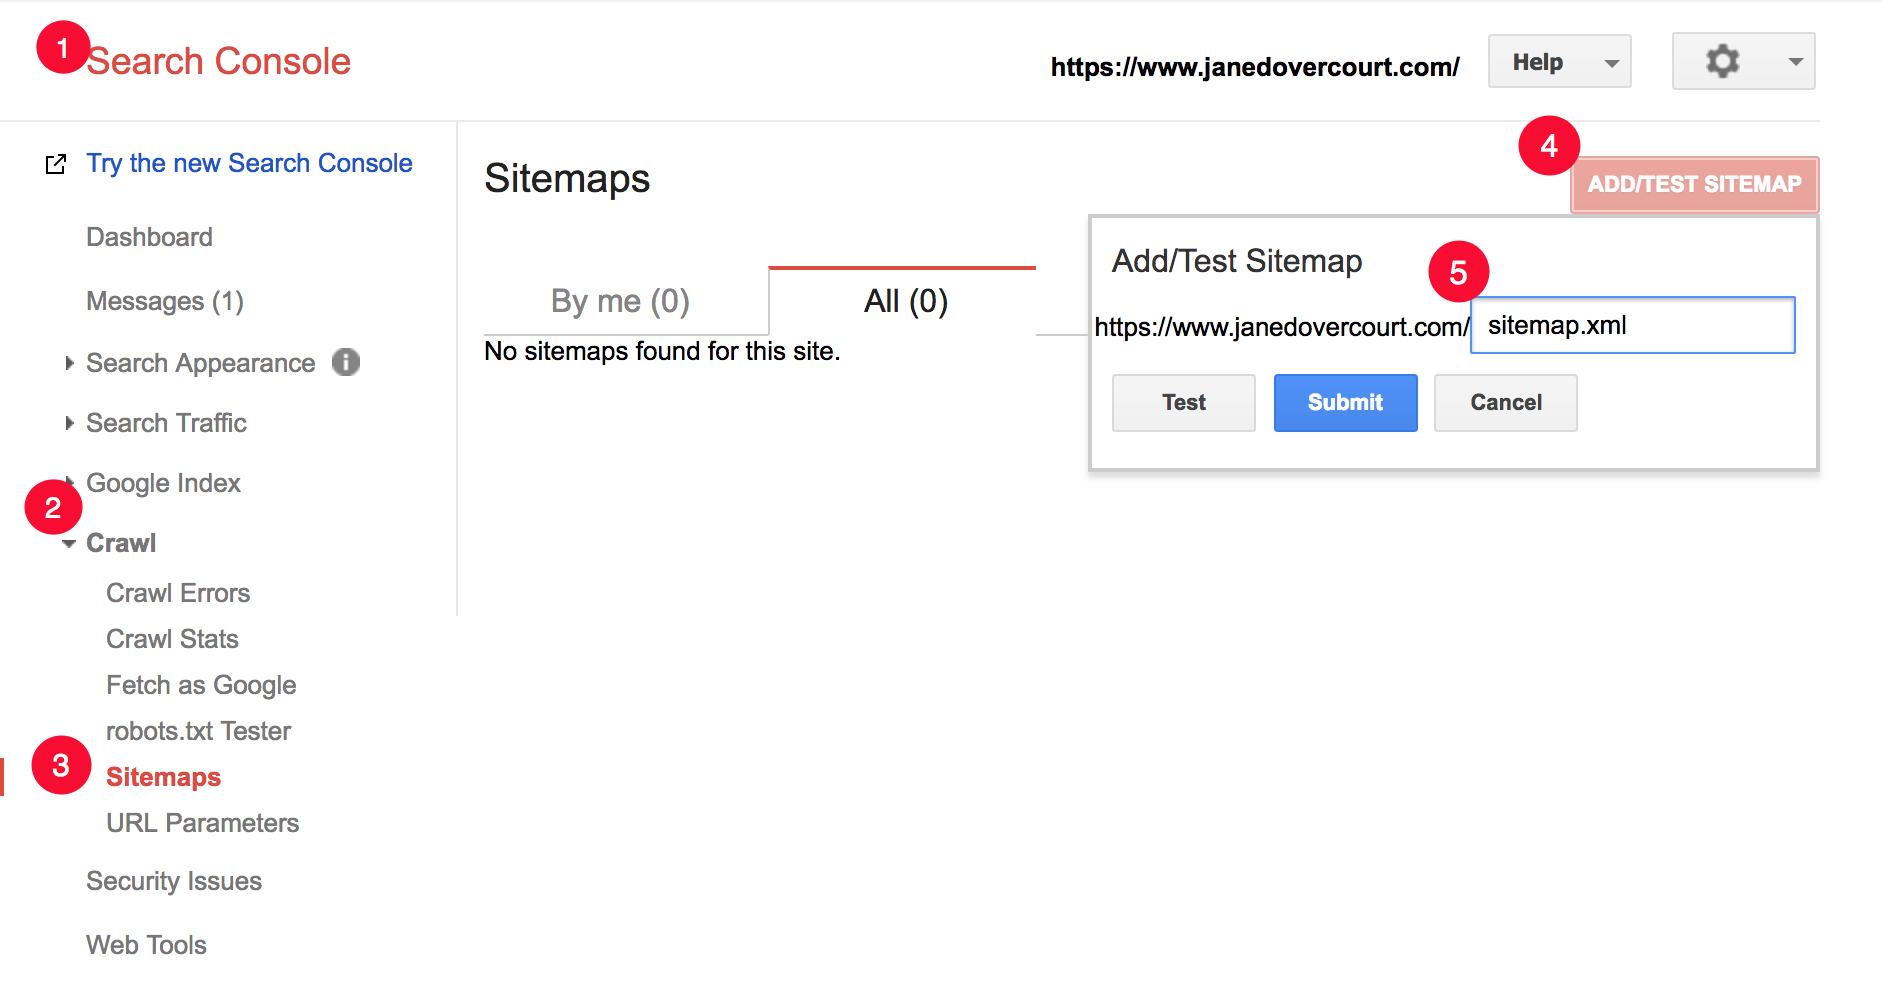 Google Search Console submit a sitemap.xml file for indexing